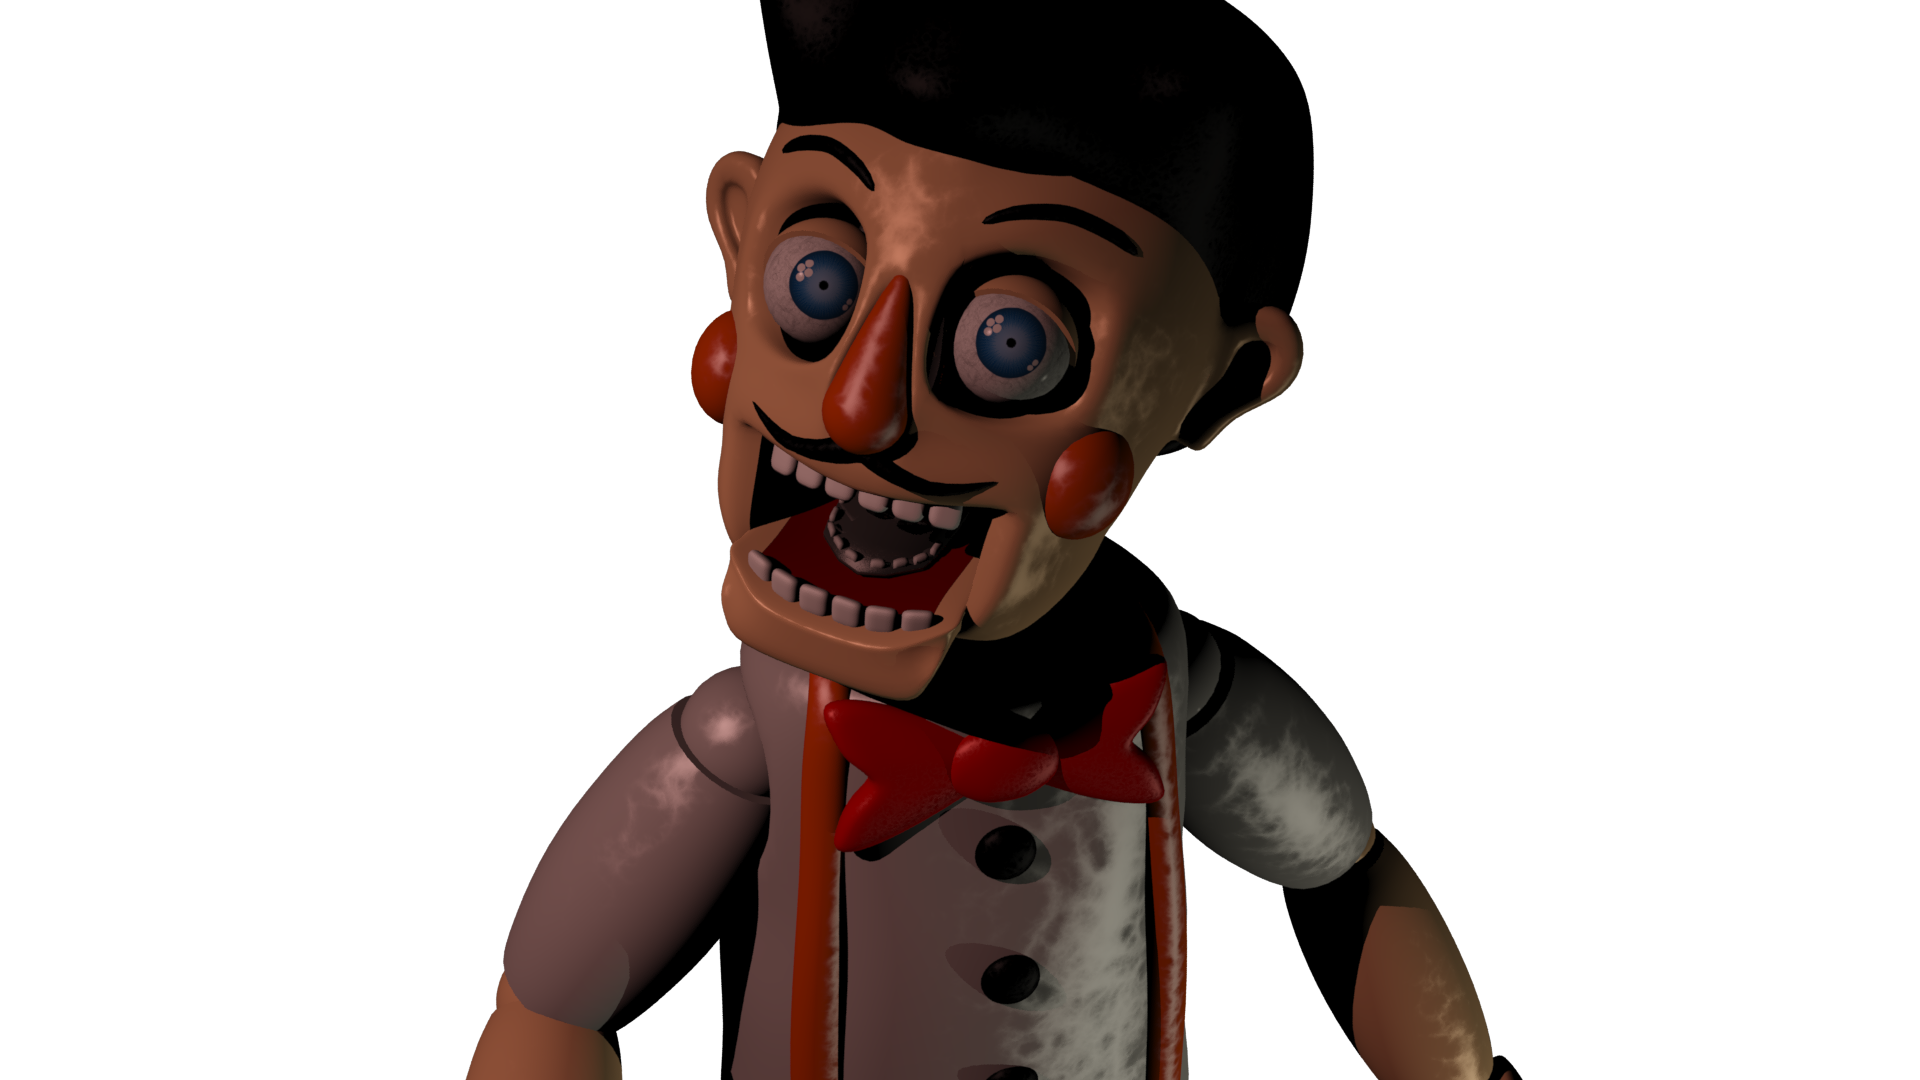 Ice Cream Man v2, Leering | Five Nights at Freddy's | Know Your Meme